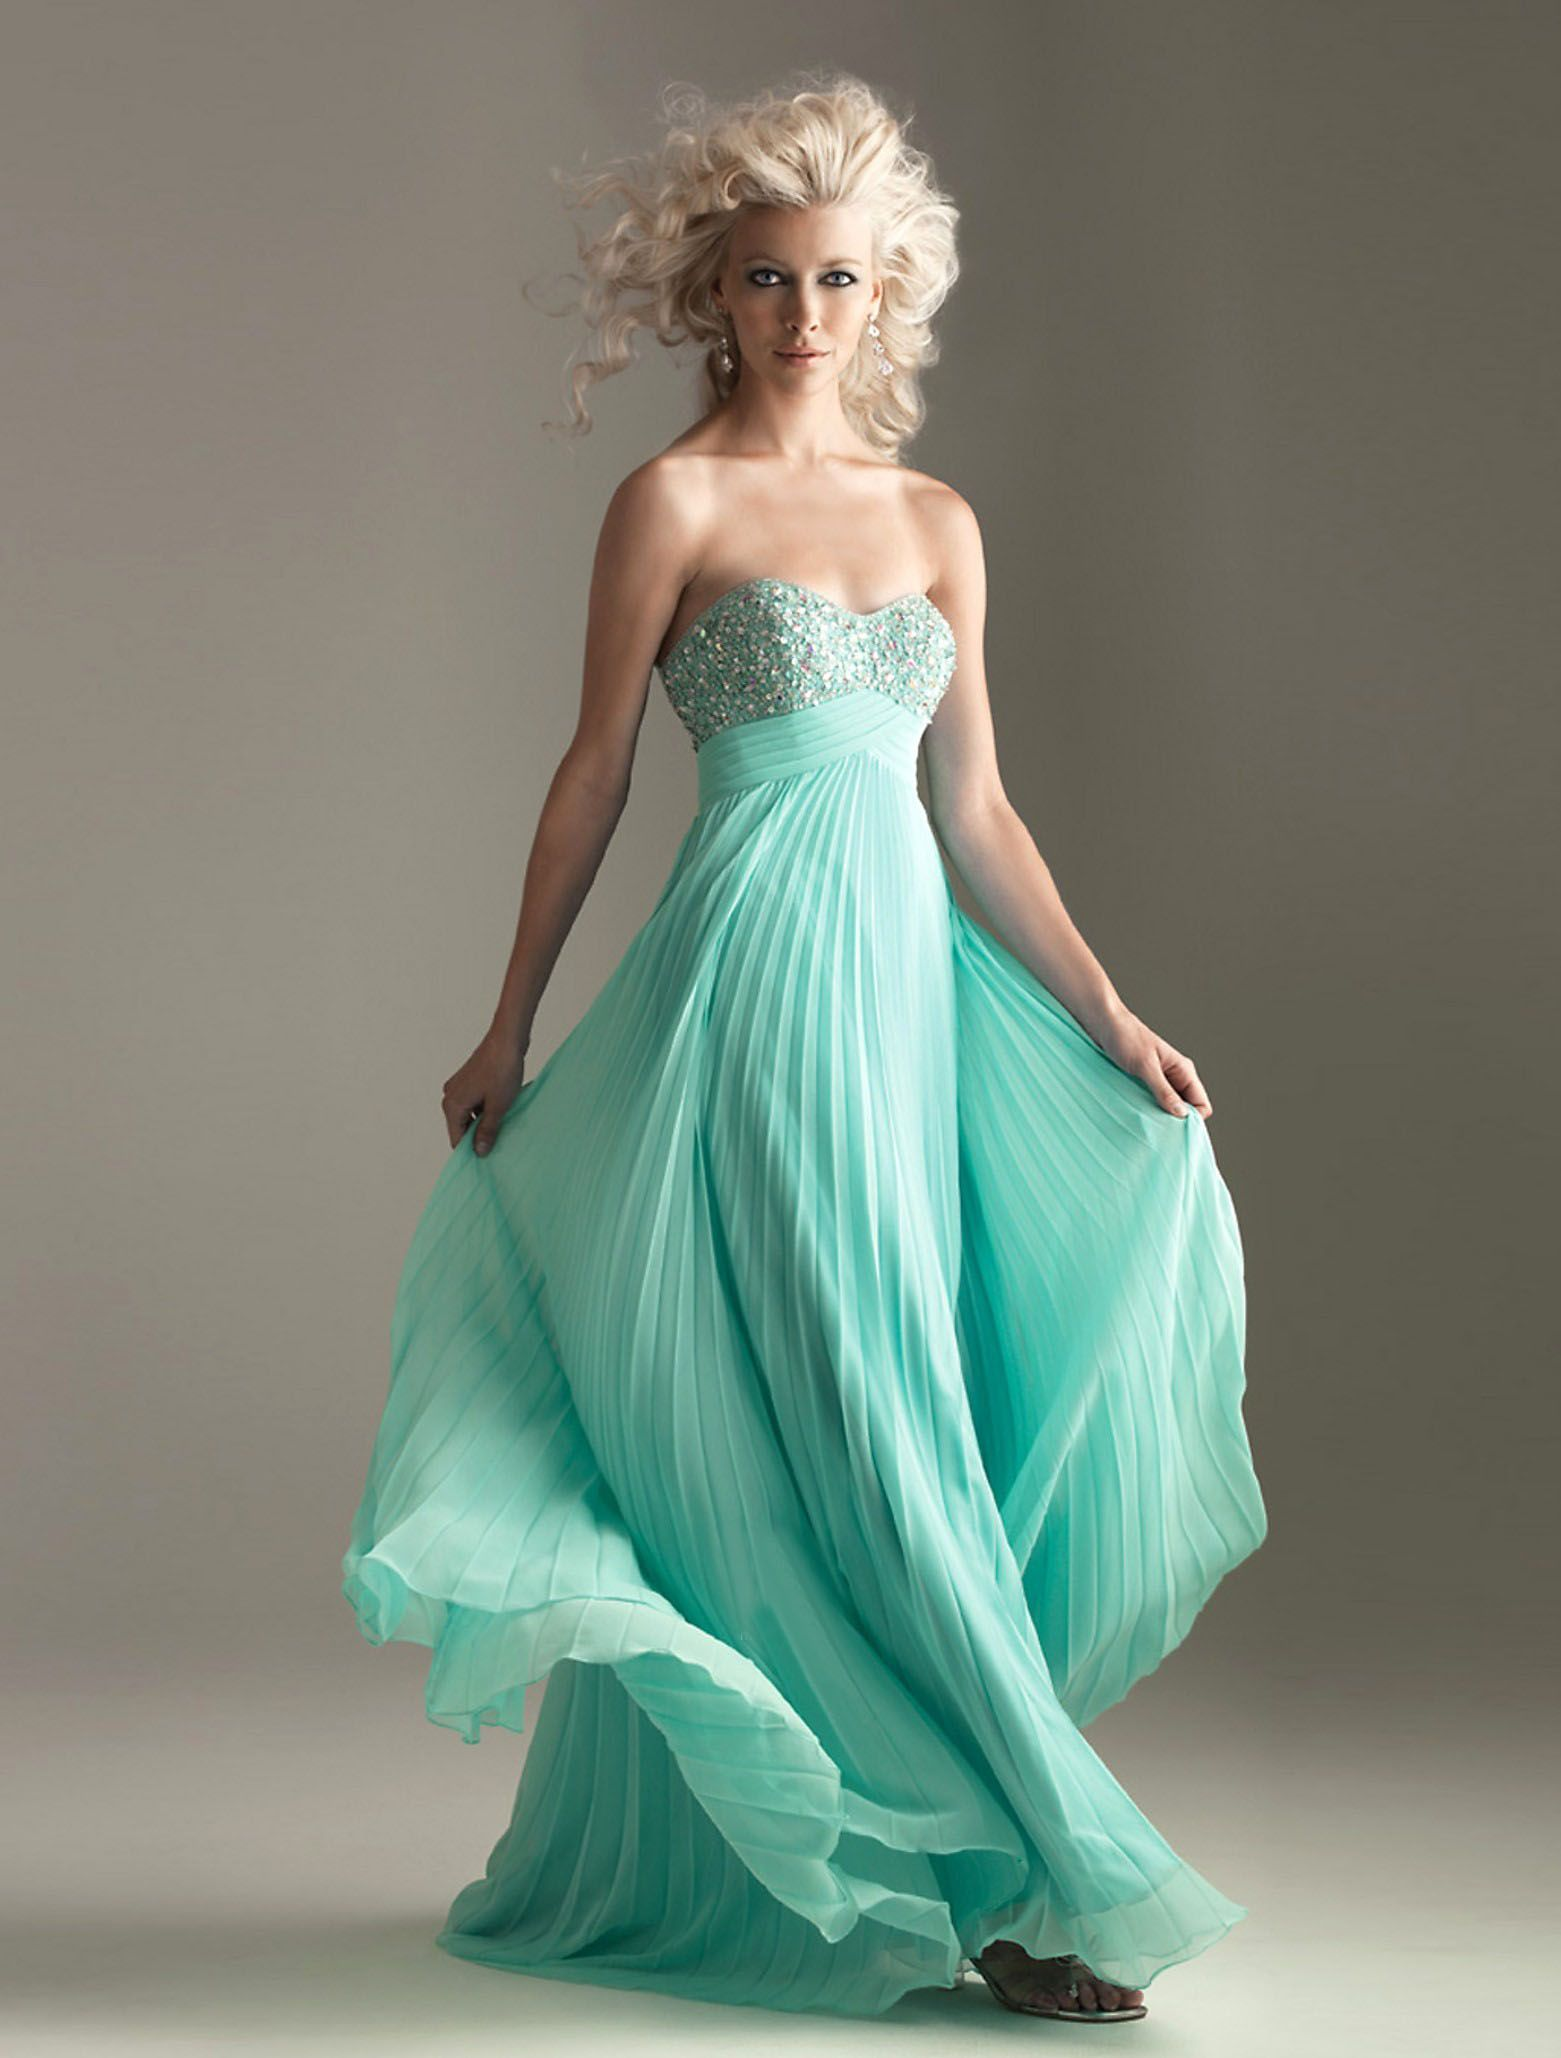 Tween dresses strapless long | soft elegant prom night dresses ...